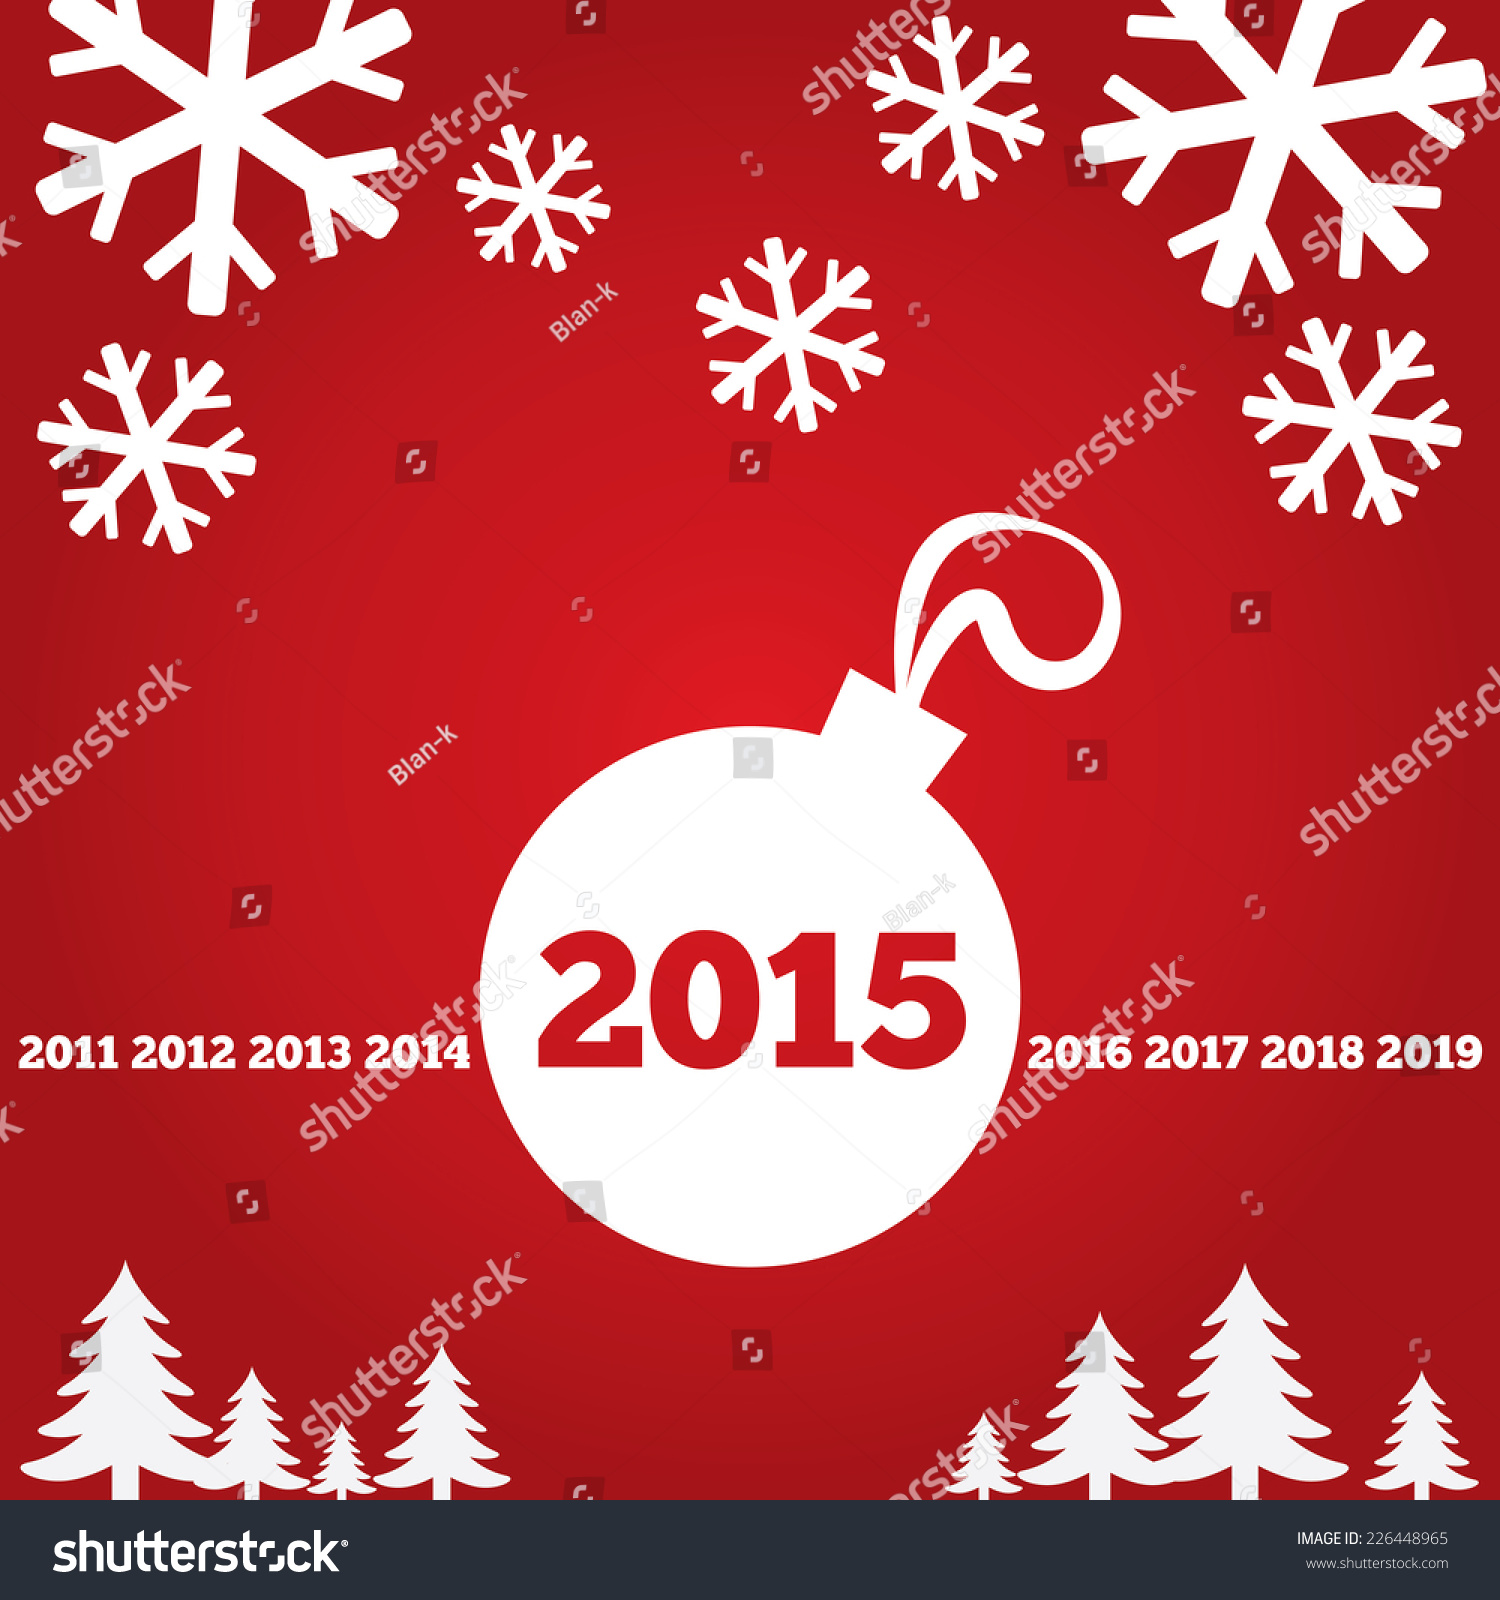 Happy new year greetings card flat stock vector 226448965 shutterstock happy new year greetings card with flat icons 2015 christmas ball tree m4hsunfo